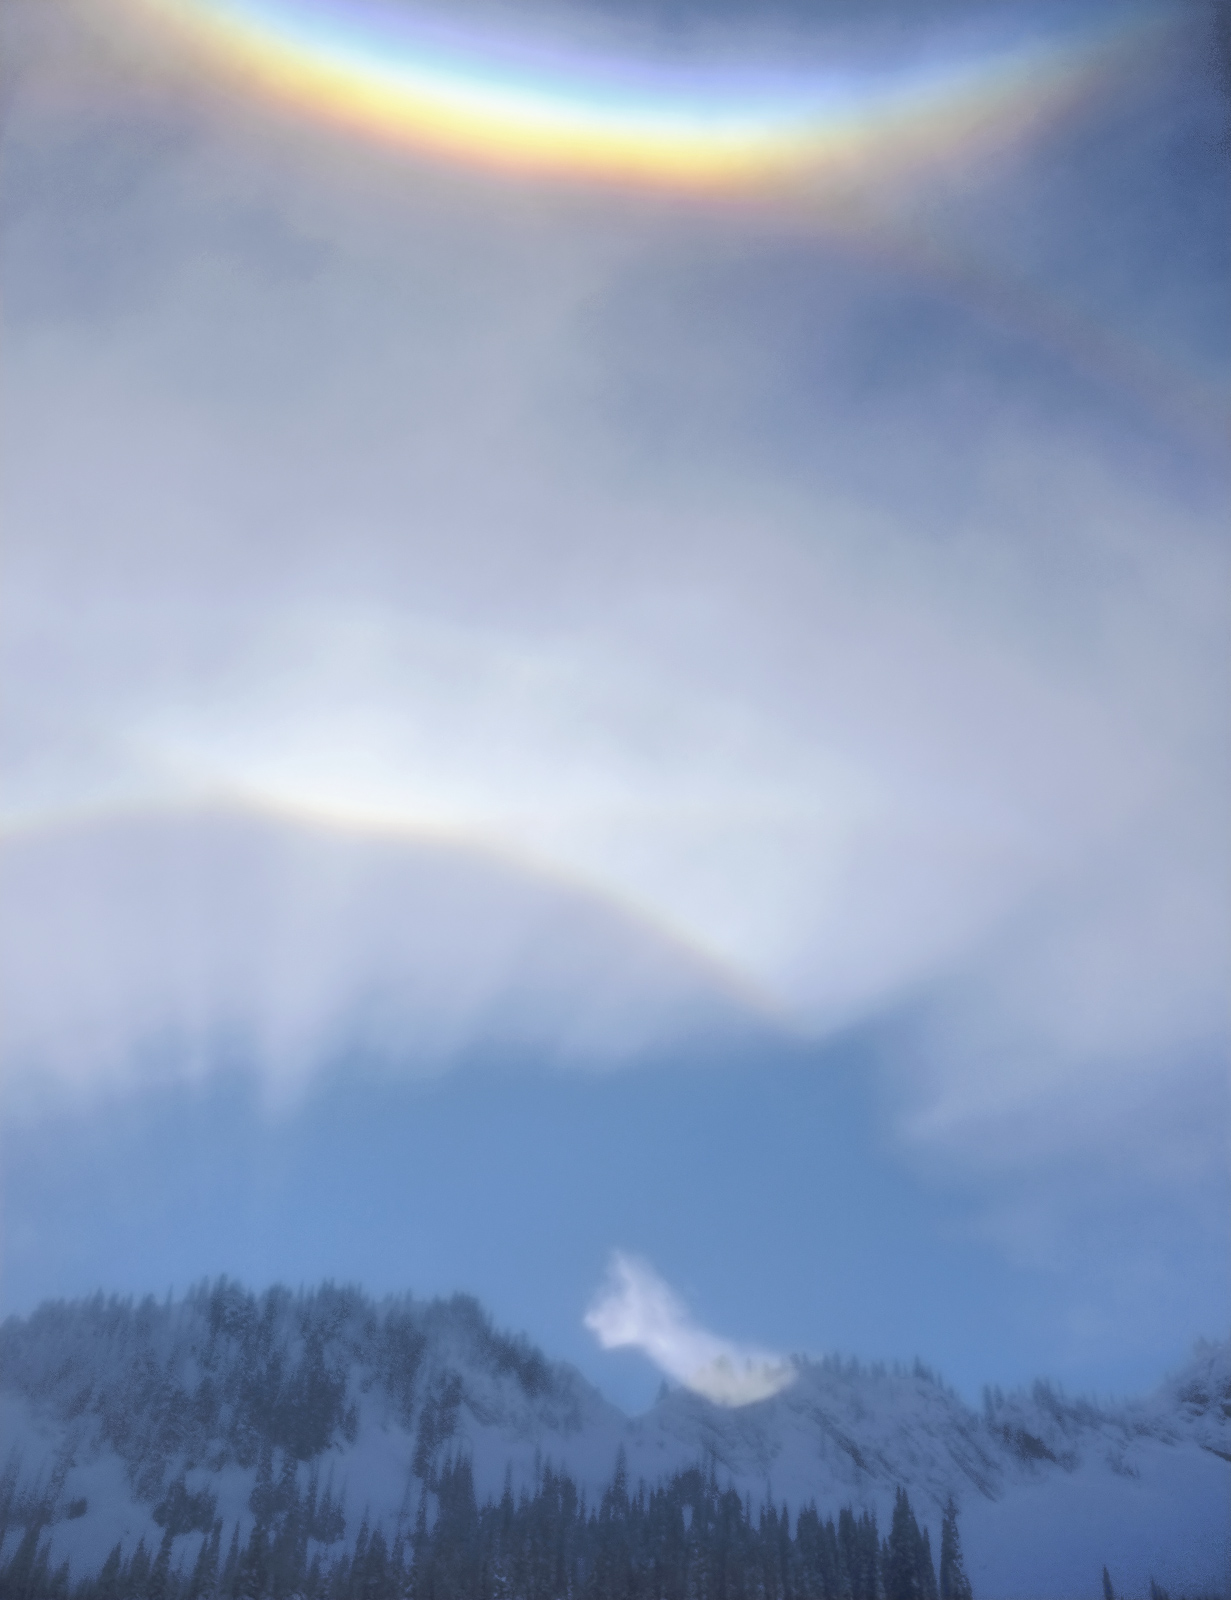 I have never before withessed solar phenomena such as these and it occurred whilst skiing first thing in the morning in the Canadian...